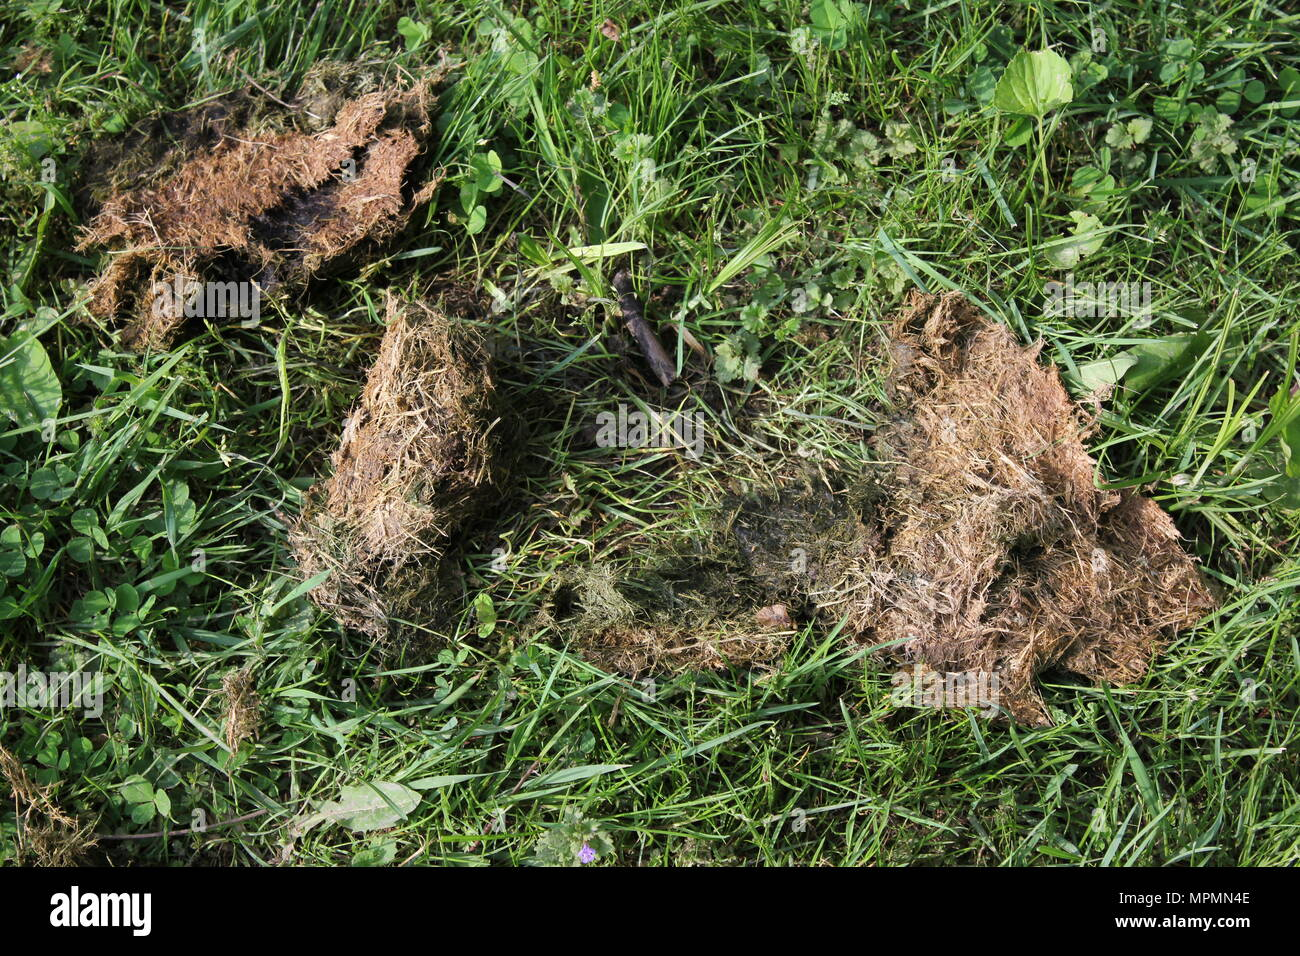 Brown and dried summer grass clippings inevitably collected in a small pile on the lawn. - Stock Image